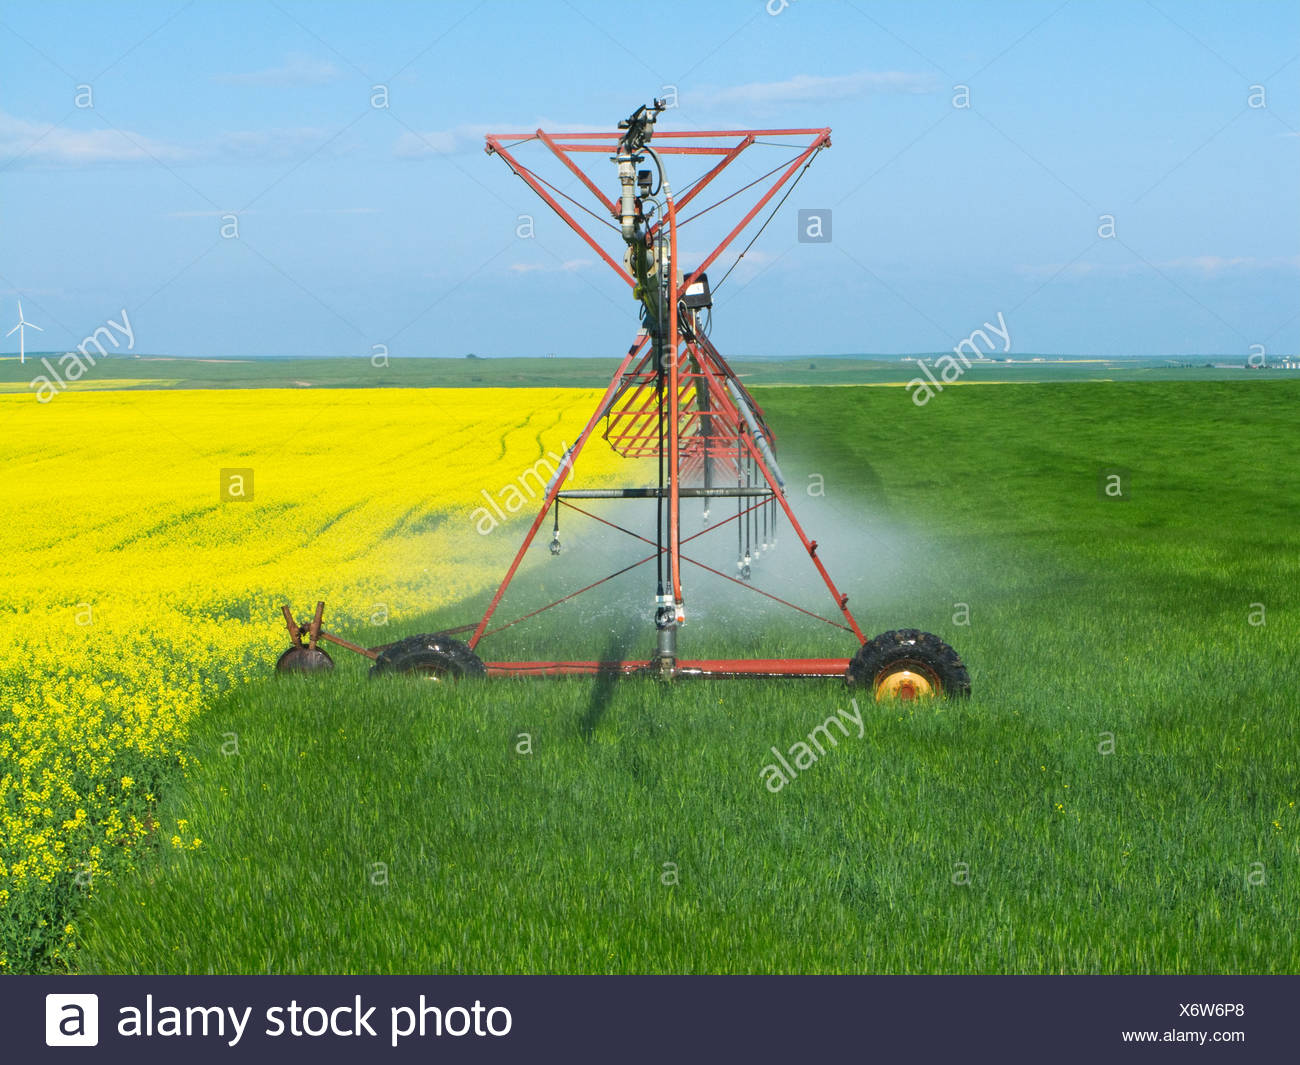 A center pivot irrigation system crossing from a blooming canola field to an adjoining cereal grain field / Alberta, Canada. - Stock Image